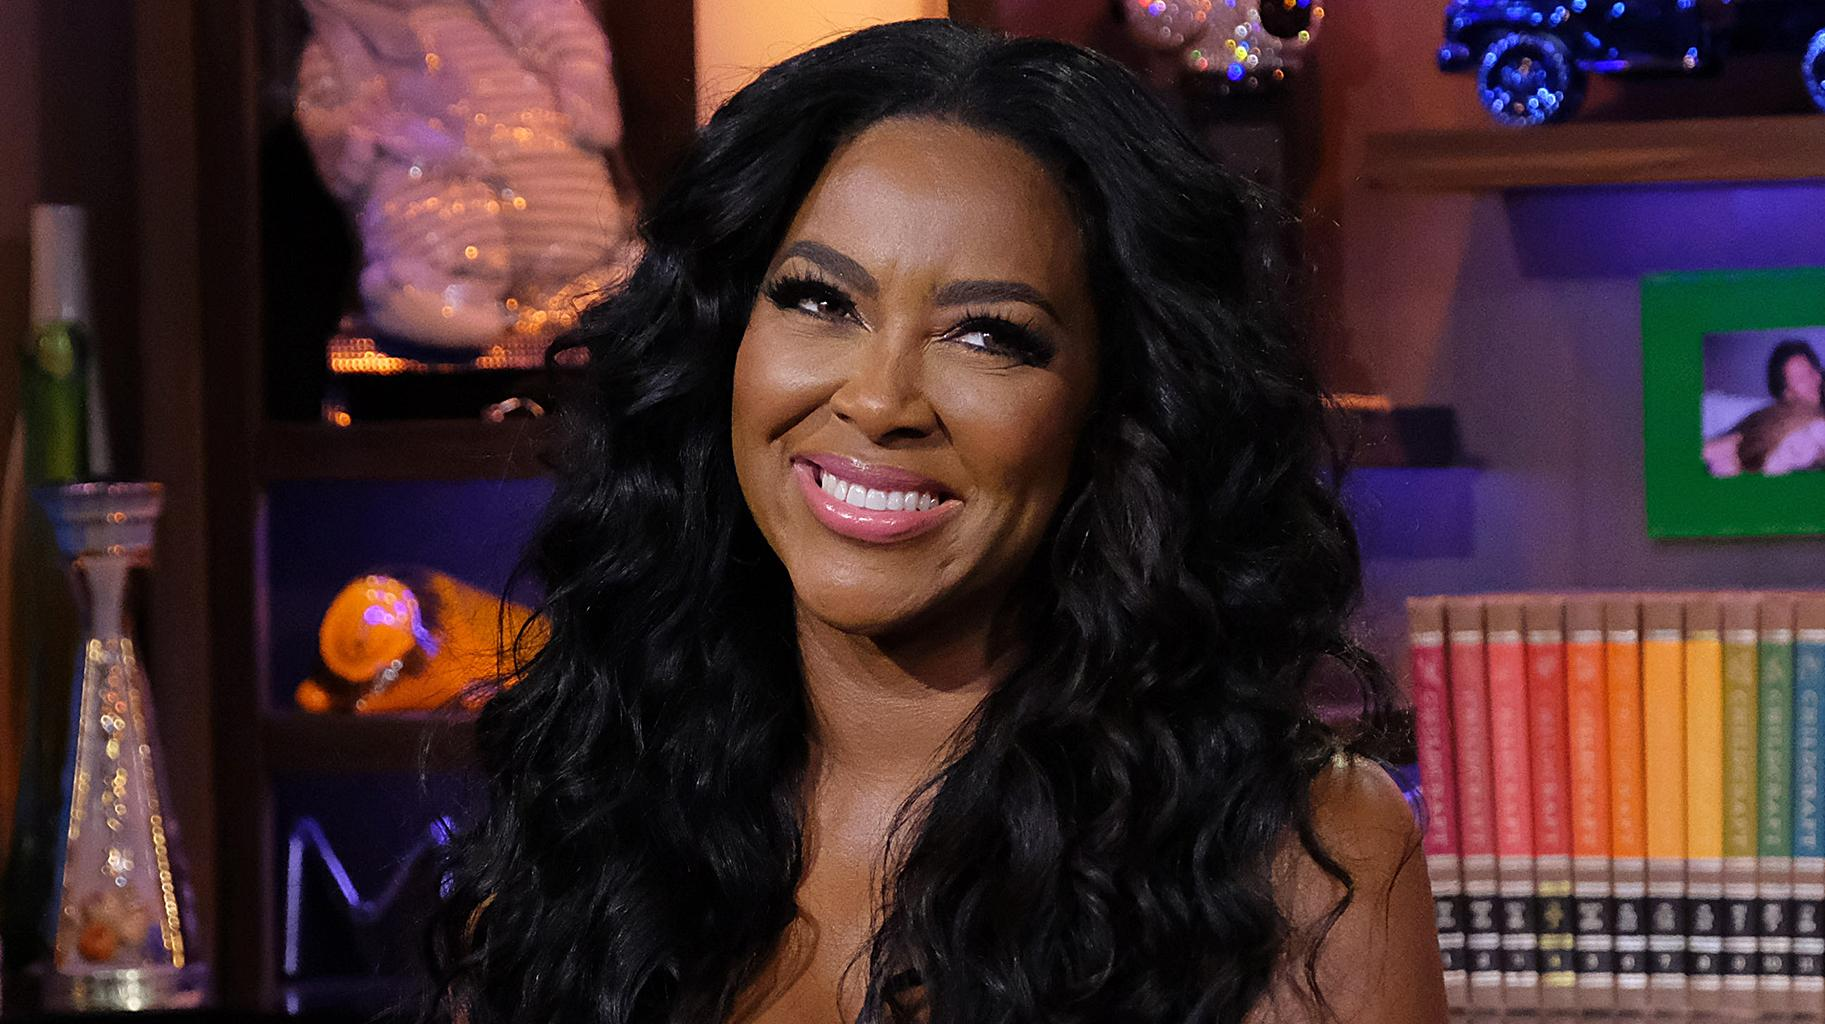 Kenya Moore Talks About What Can Drive Out Hate - Here's The Powerful Quote She Posted